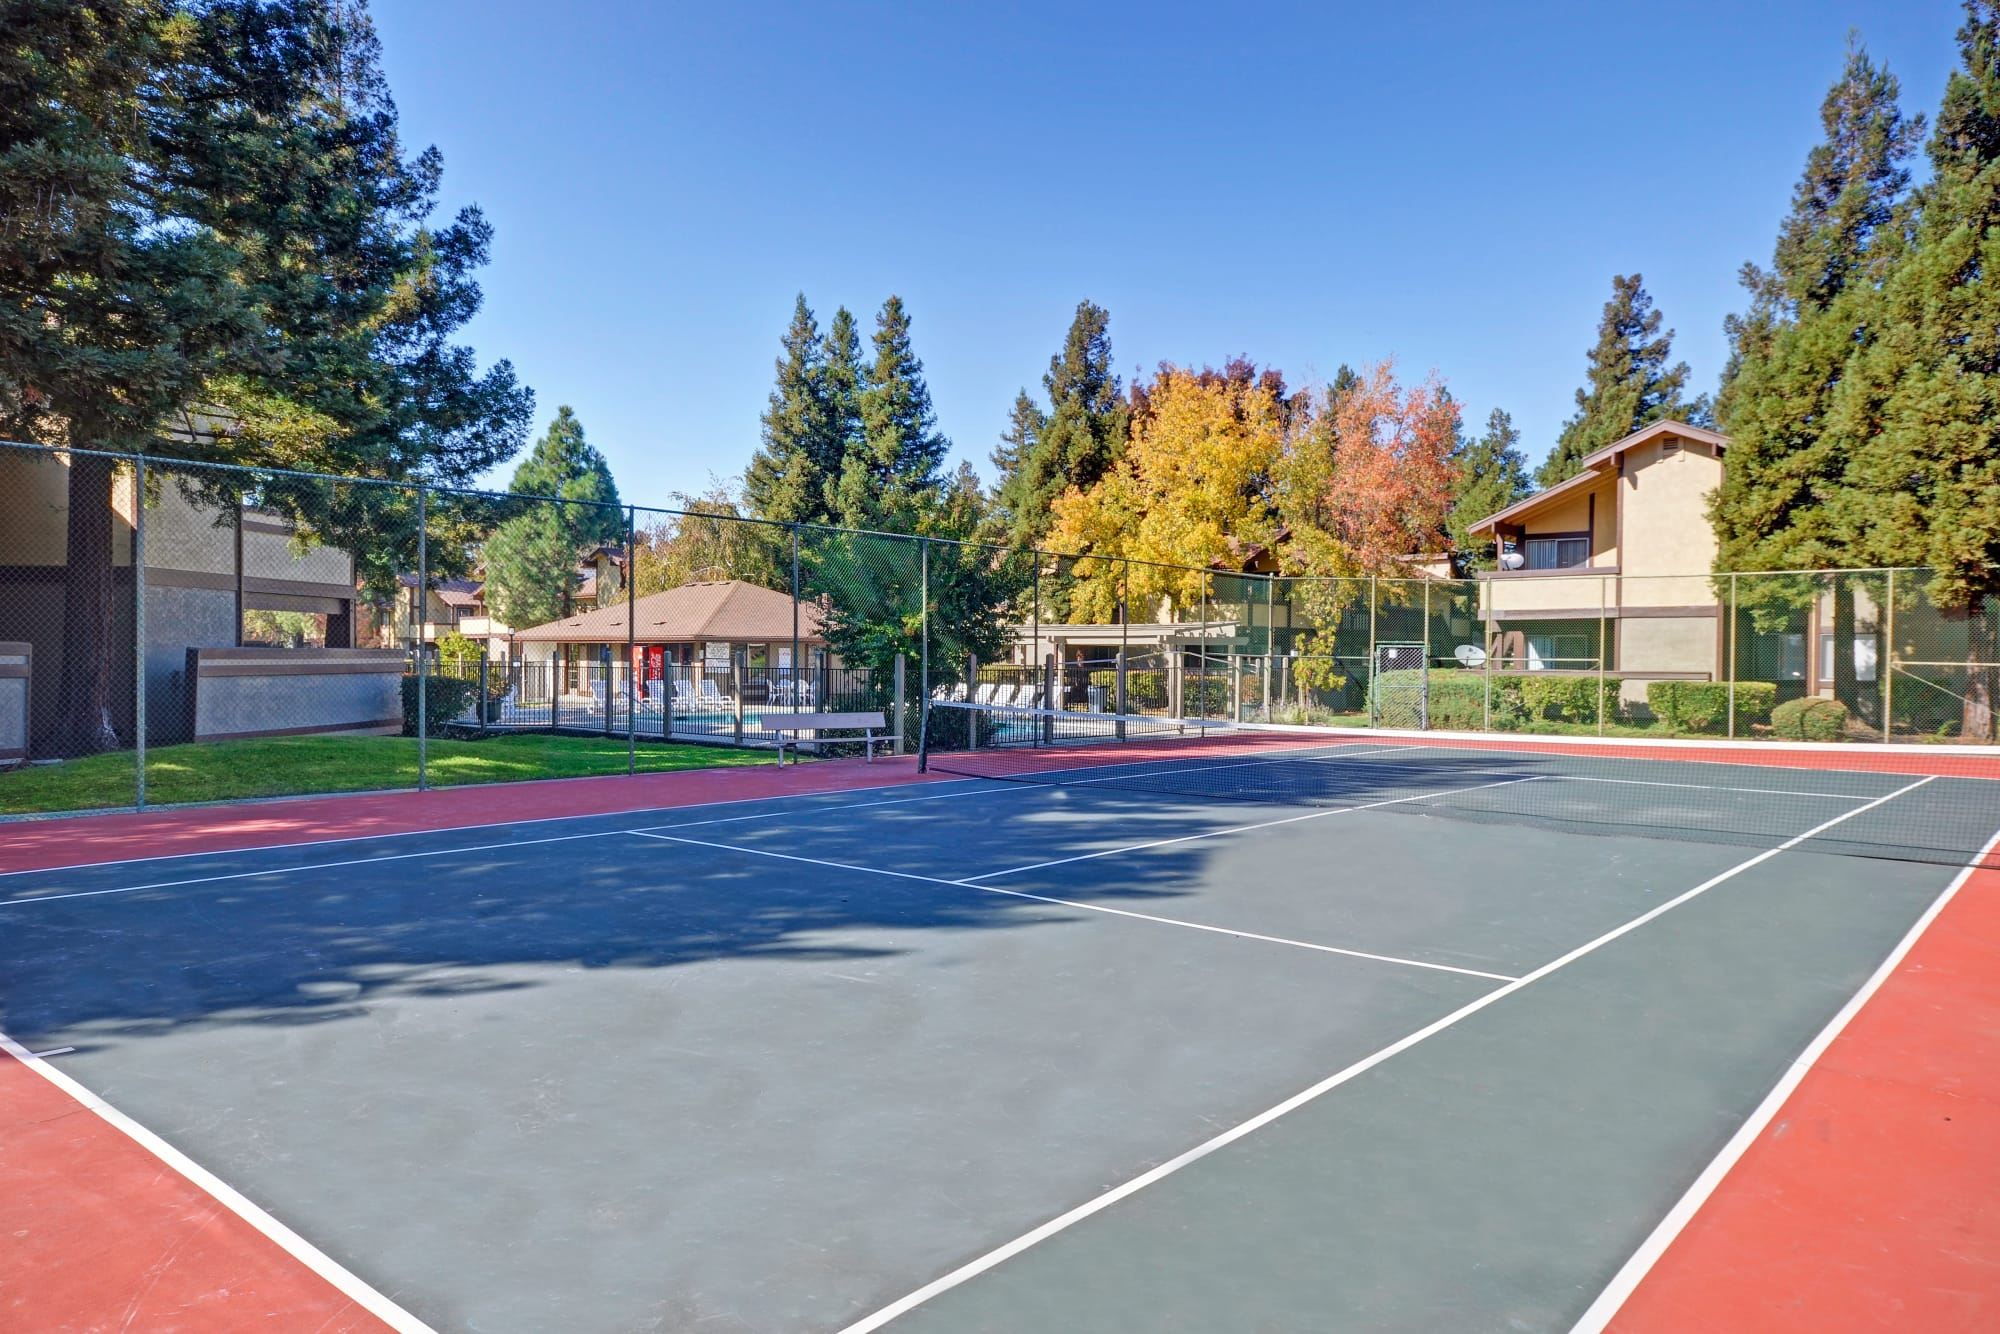 Play some tennis with your buds in Fairfield, California